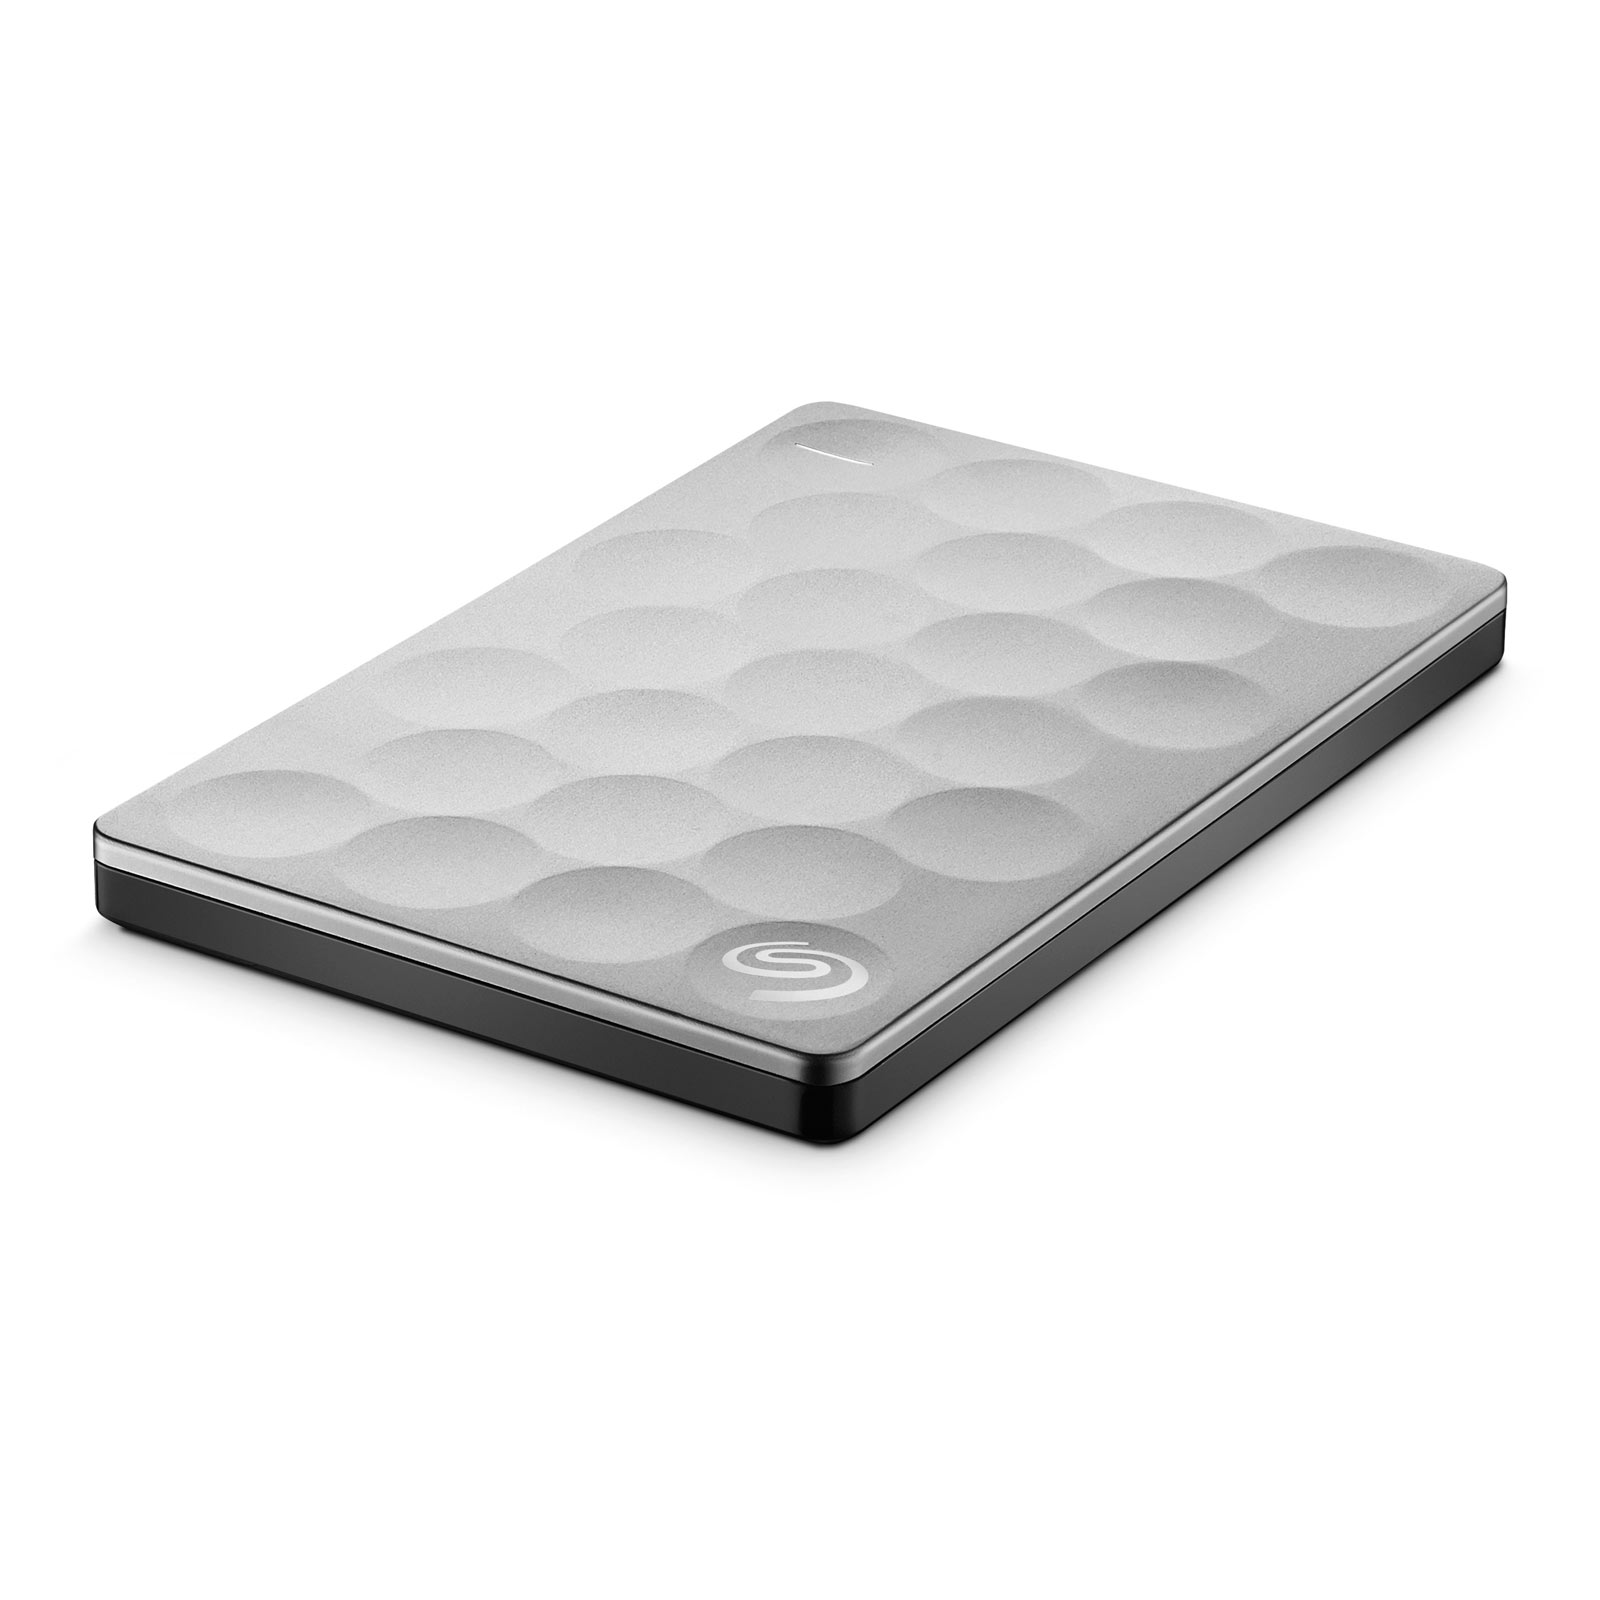 Seagate 2To Backup Plus Ultra Slim platine - Disque dur externe - 3